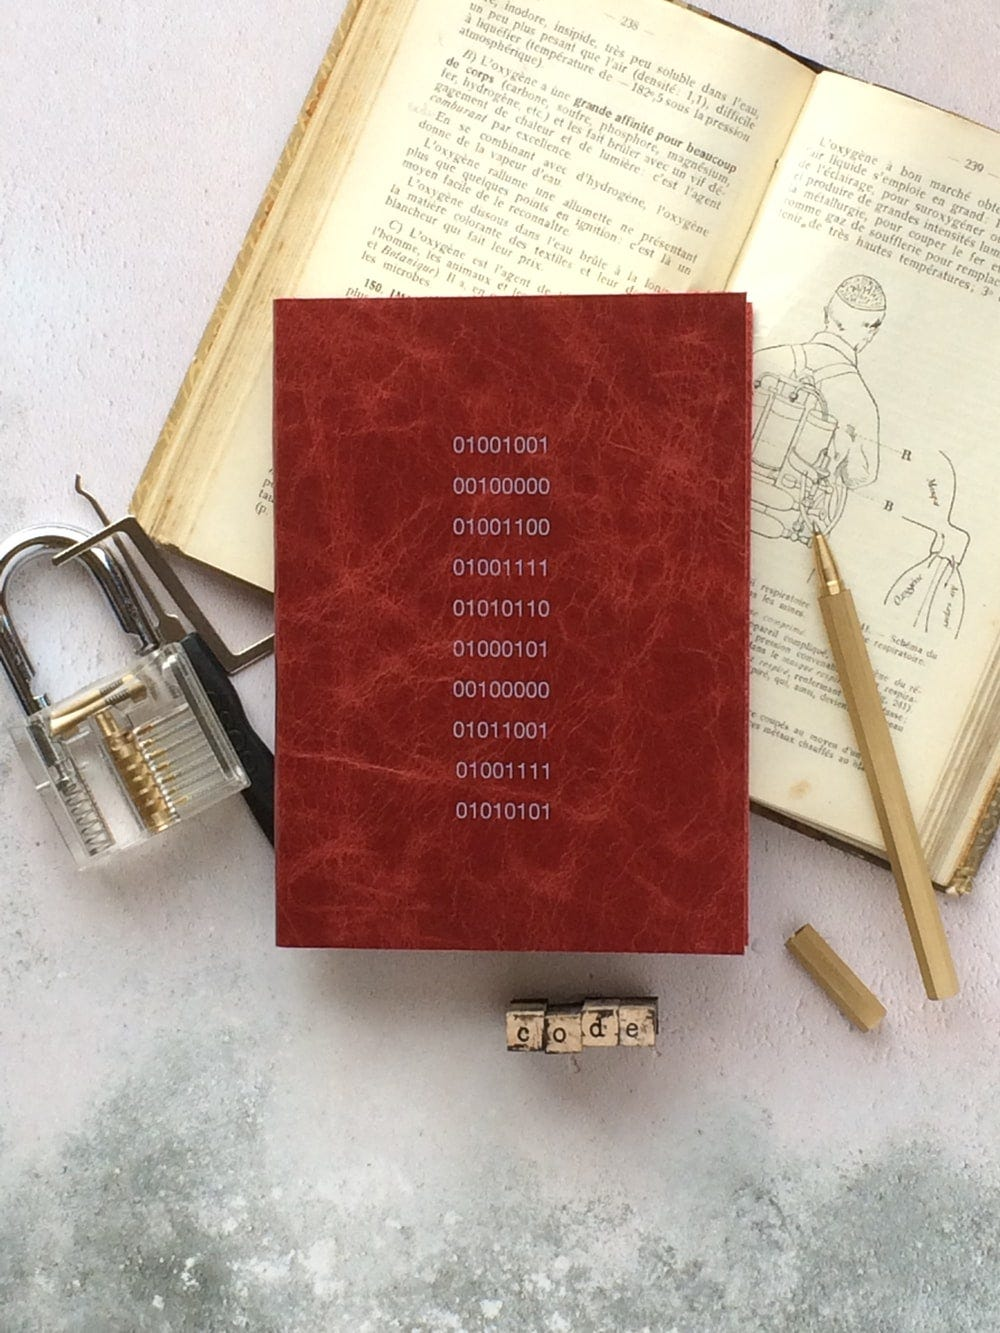 stainless steel padlock beside book and pen